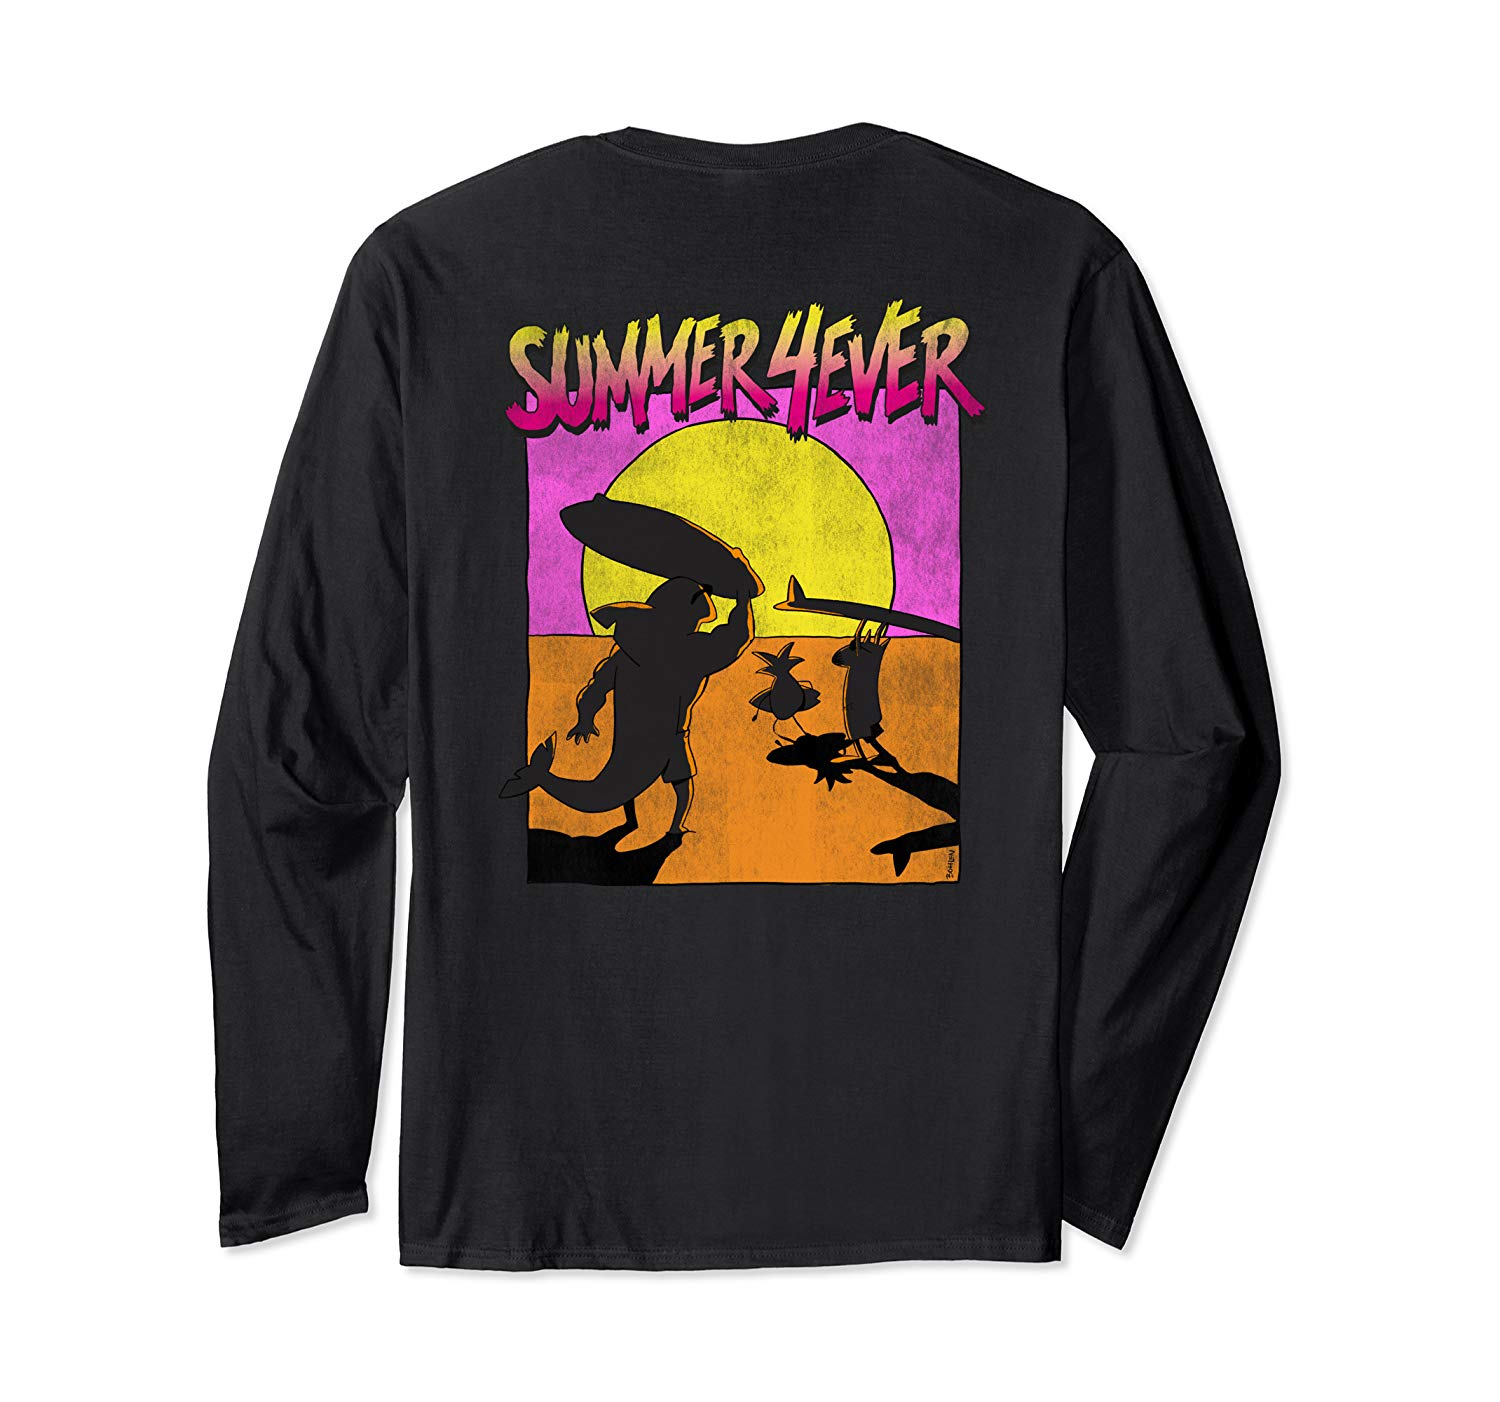 T-Shirt: Summer 4ever Funny 80s Style Surf Design Langarmshirt